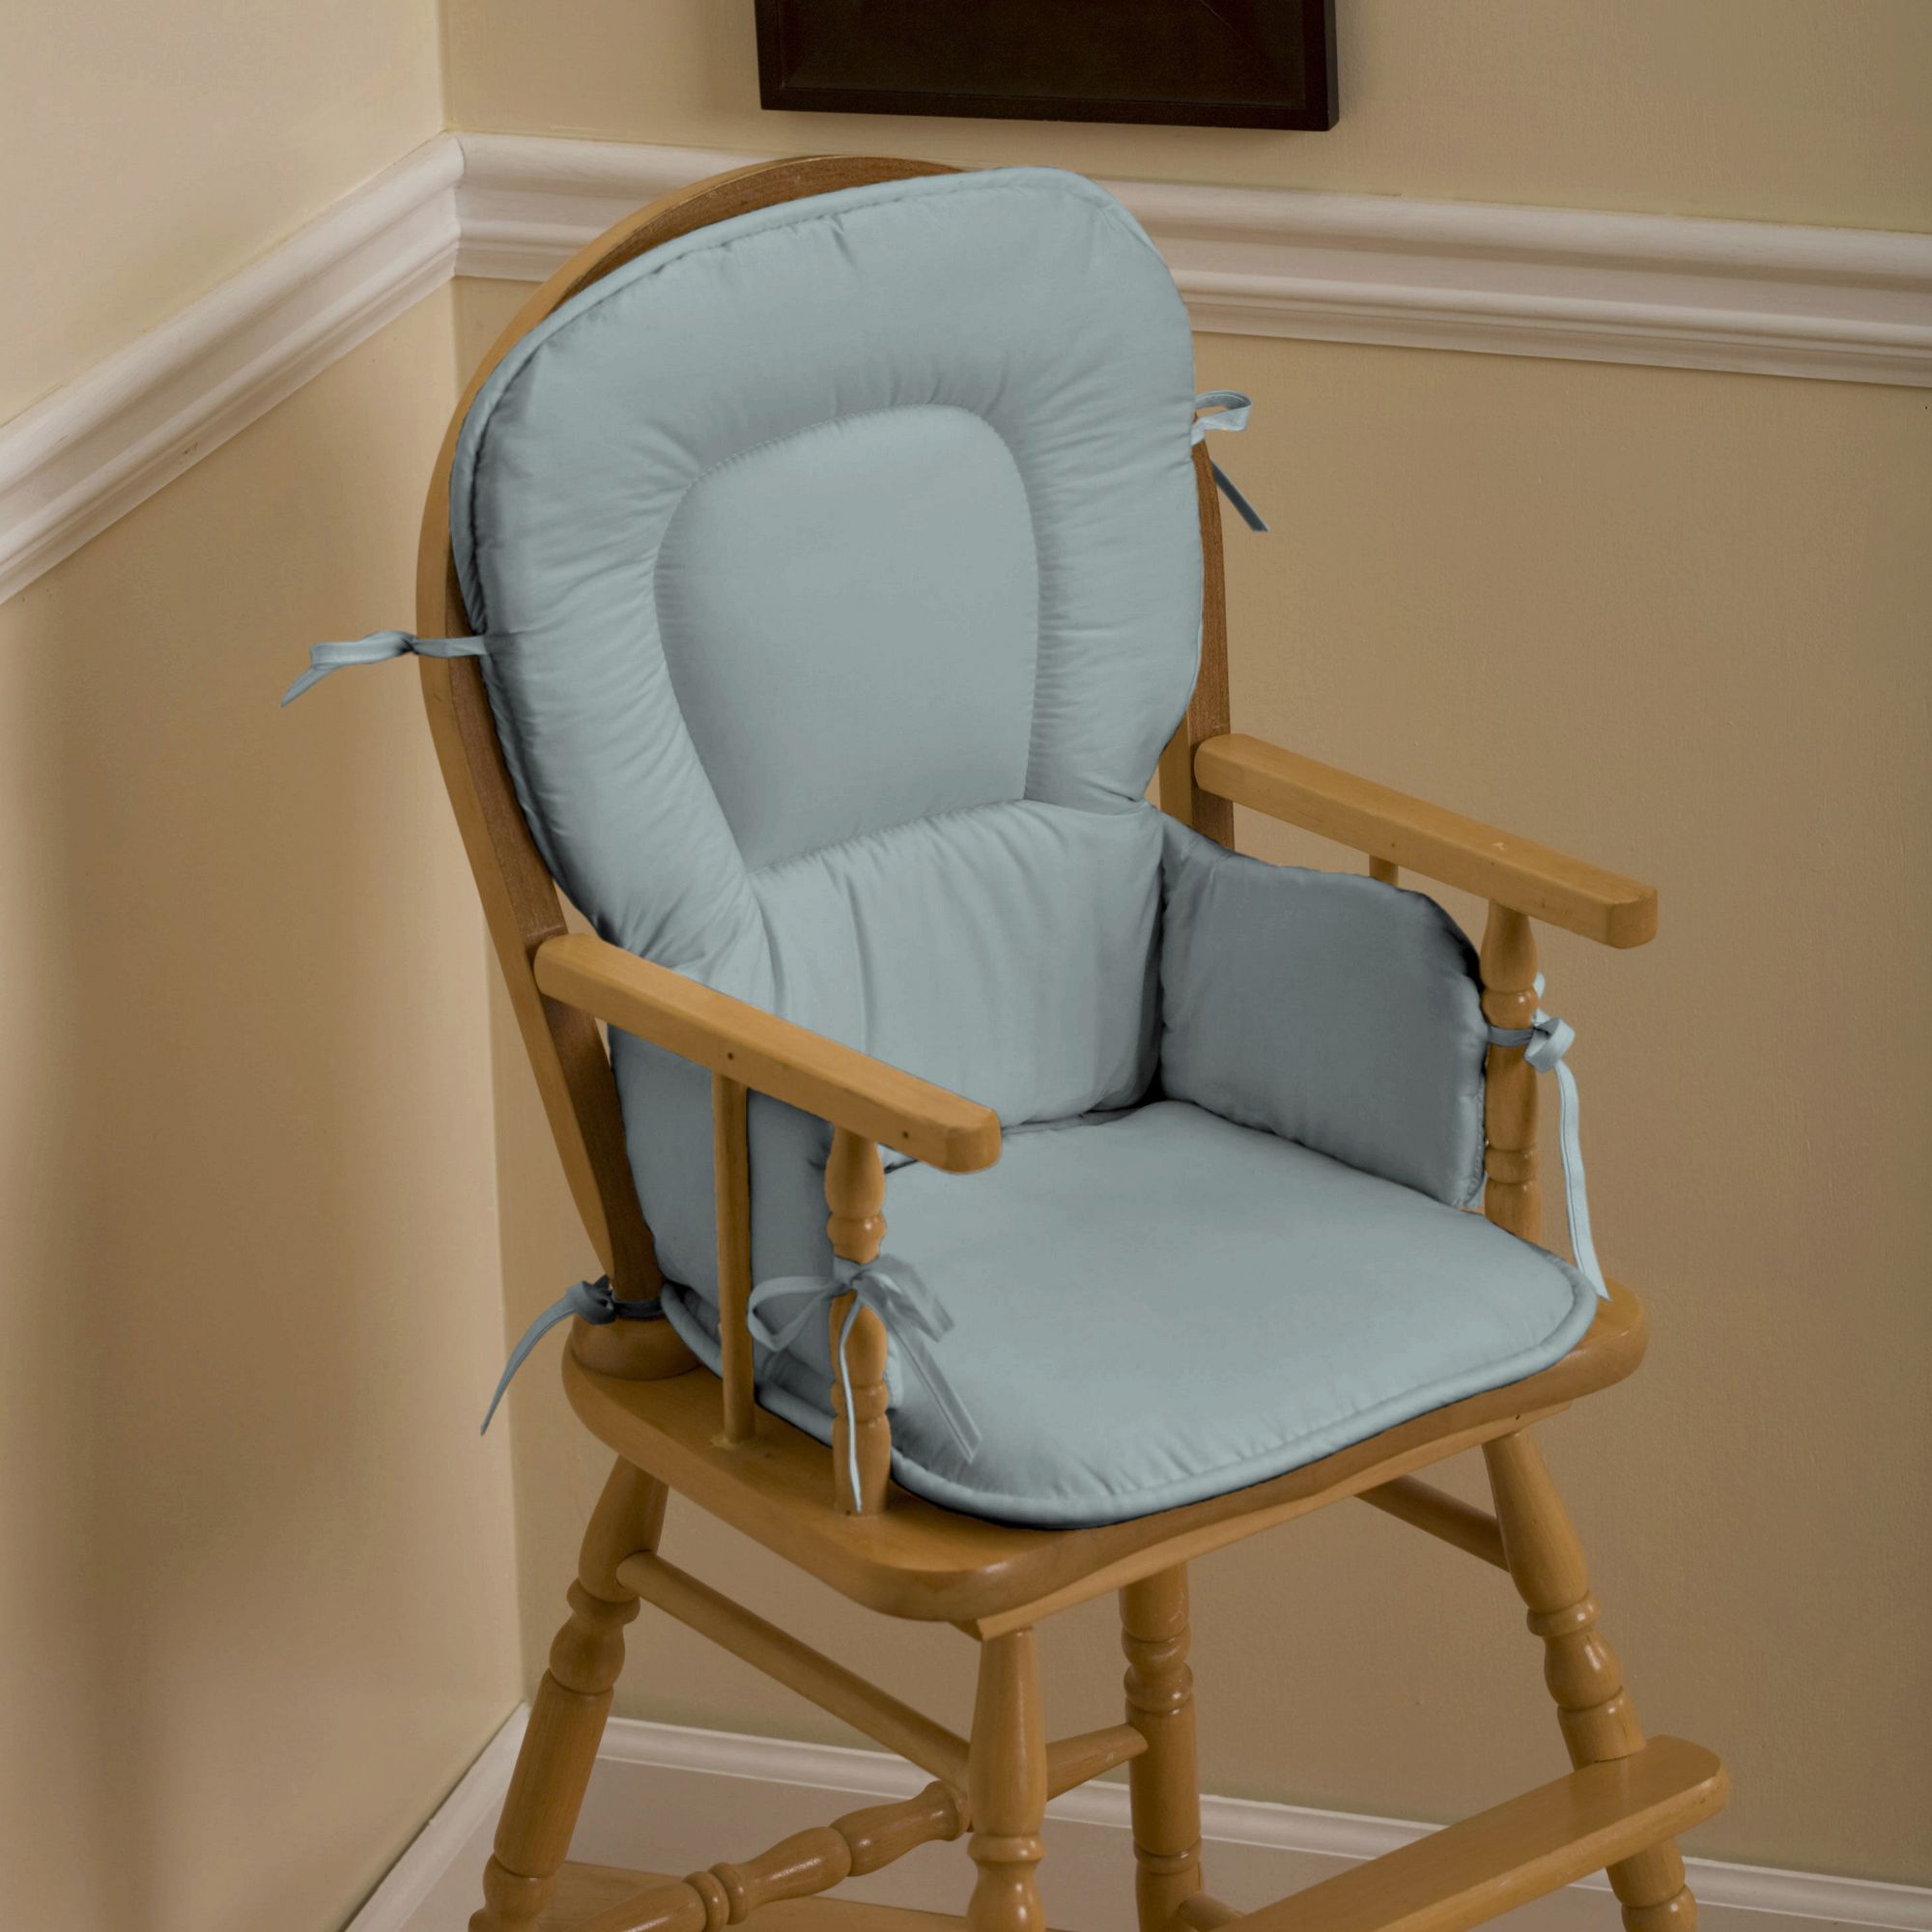 dining room chair pads and cushions high definition pics | Solid Robin's Egg Blue High Chair Pad | Rocking chair pads ...